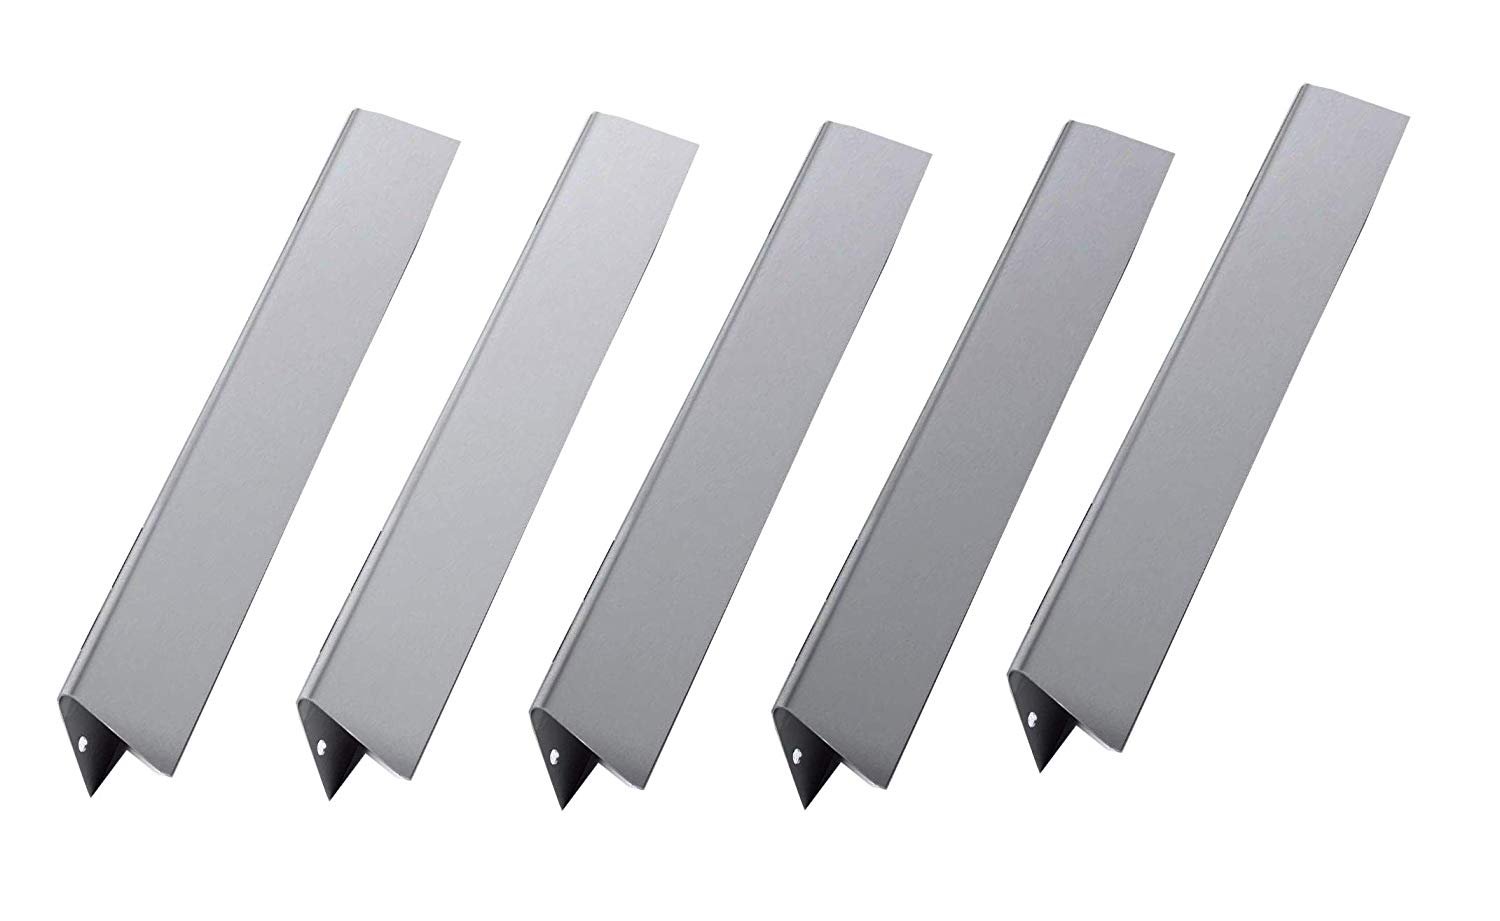 "Broilmann (5-pack) BBQ Gas Grill Stainless Steel Flavorizer Bars For Weber Spirit 300 Gas Grills With Front-Mounted Control Panel (Dimensions: 15 1/4"" x 2 3/5"", 16 Ga.)"